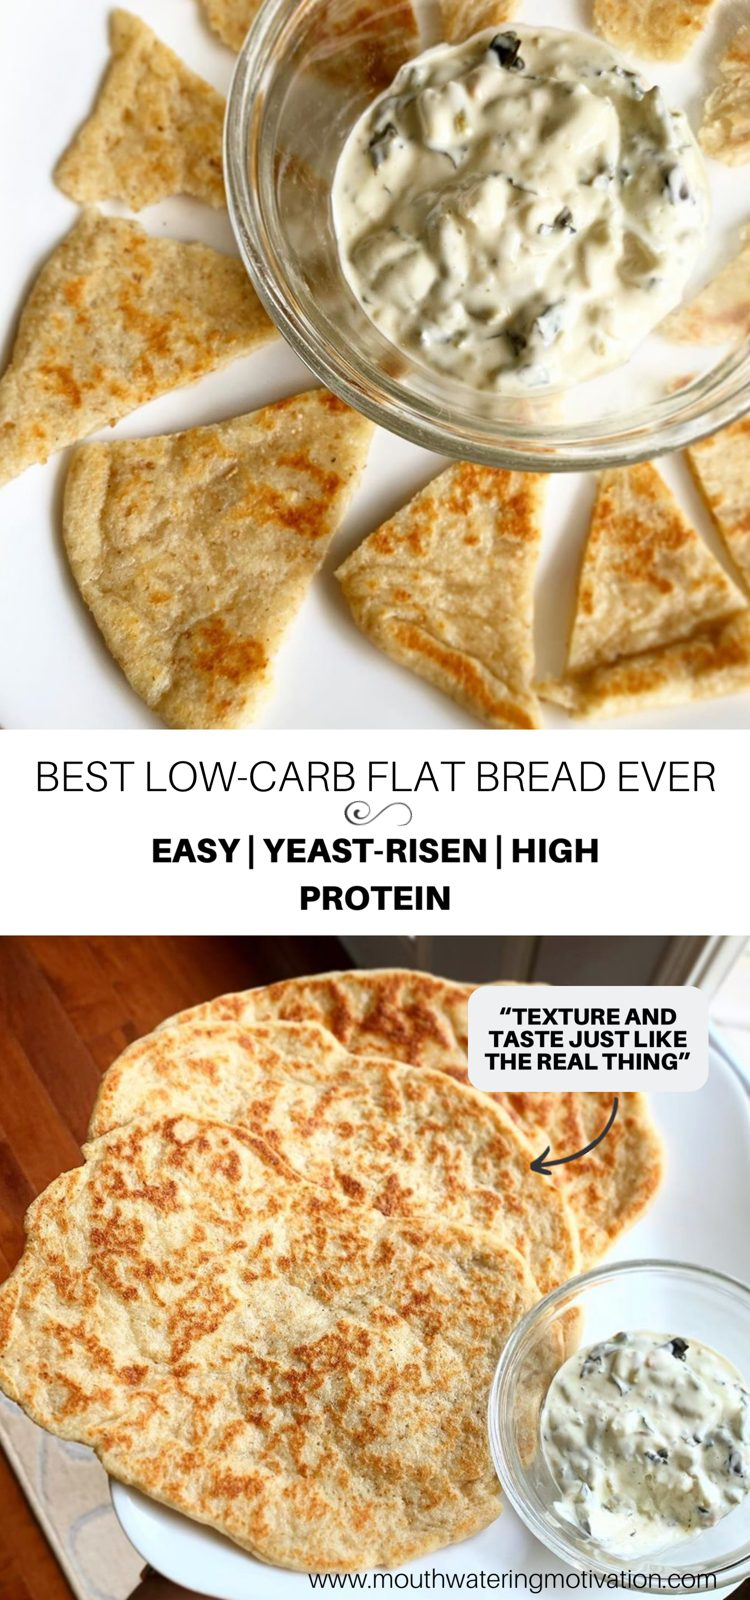 low-carb flat bread